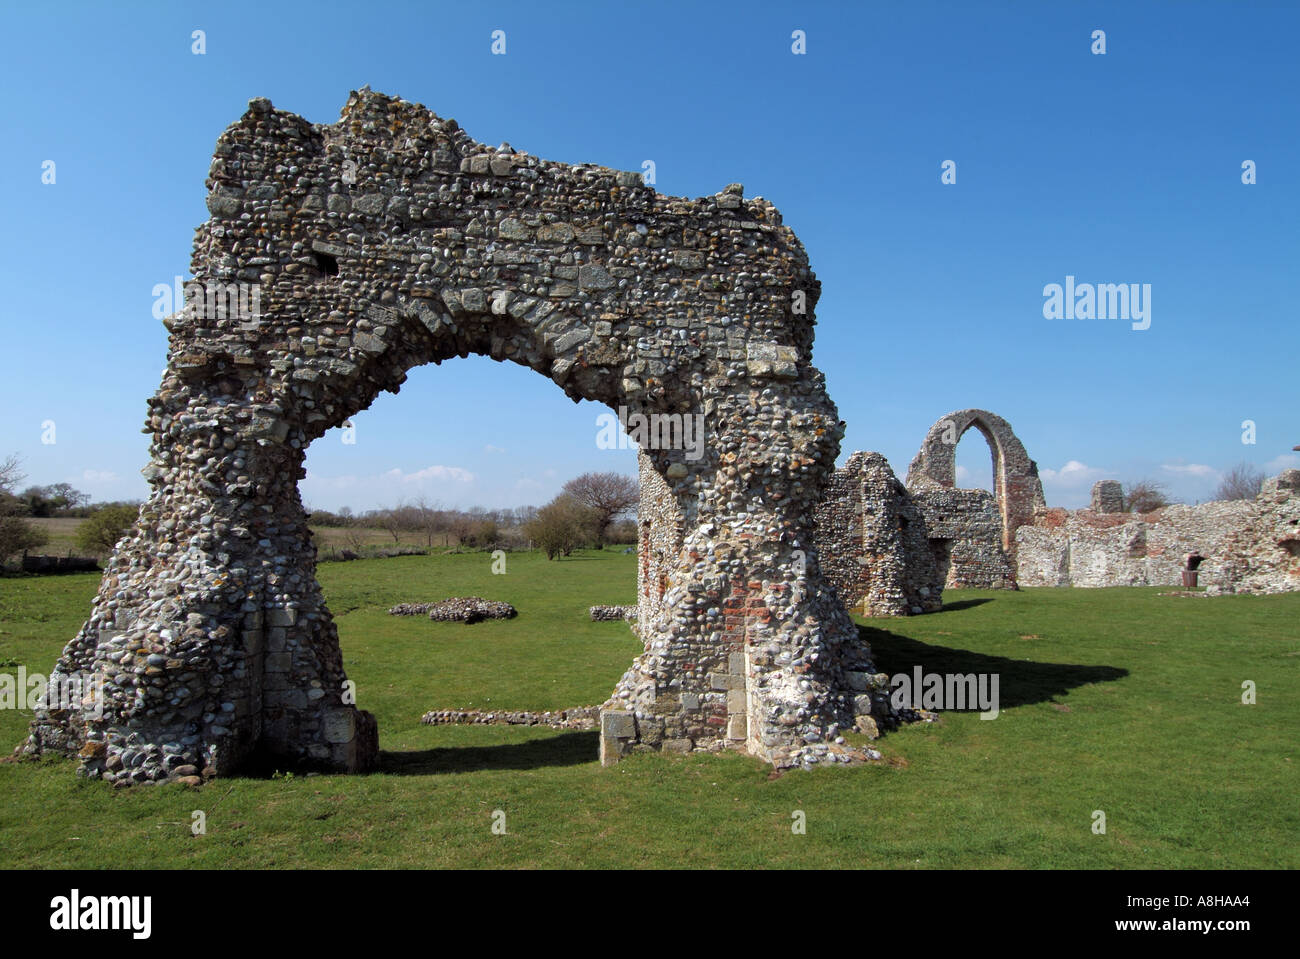 Leiston north east of Ipswich in Suffolk remains of Leiston Abbey for Premonstratensian canons - Stock Image